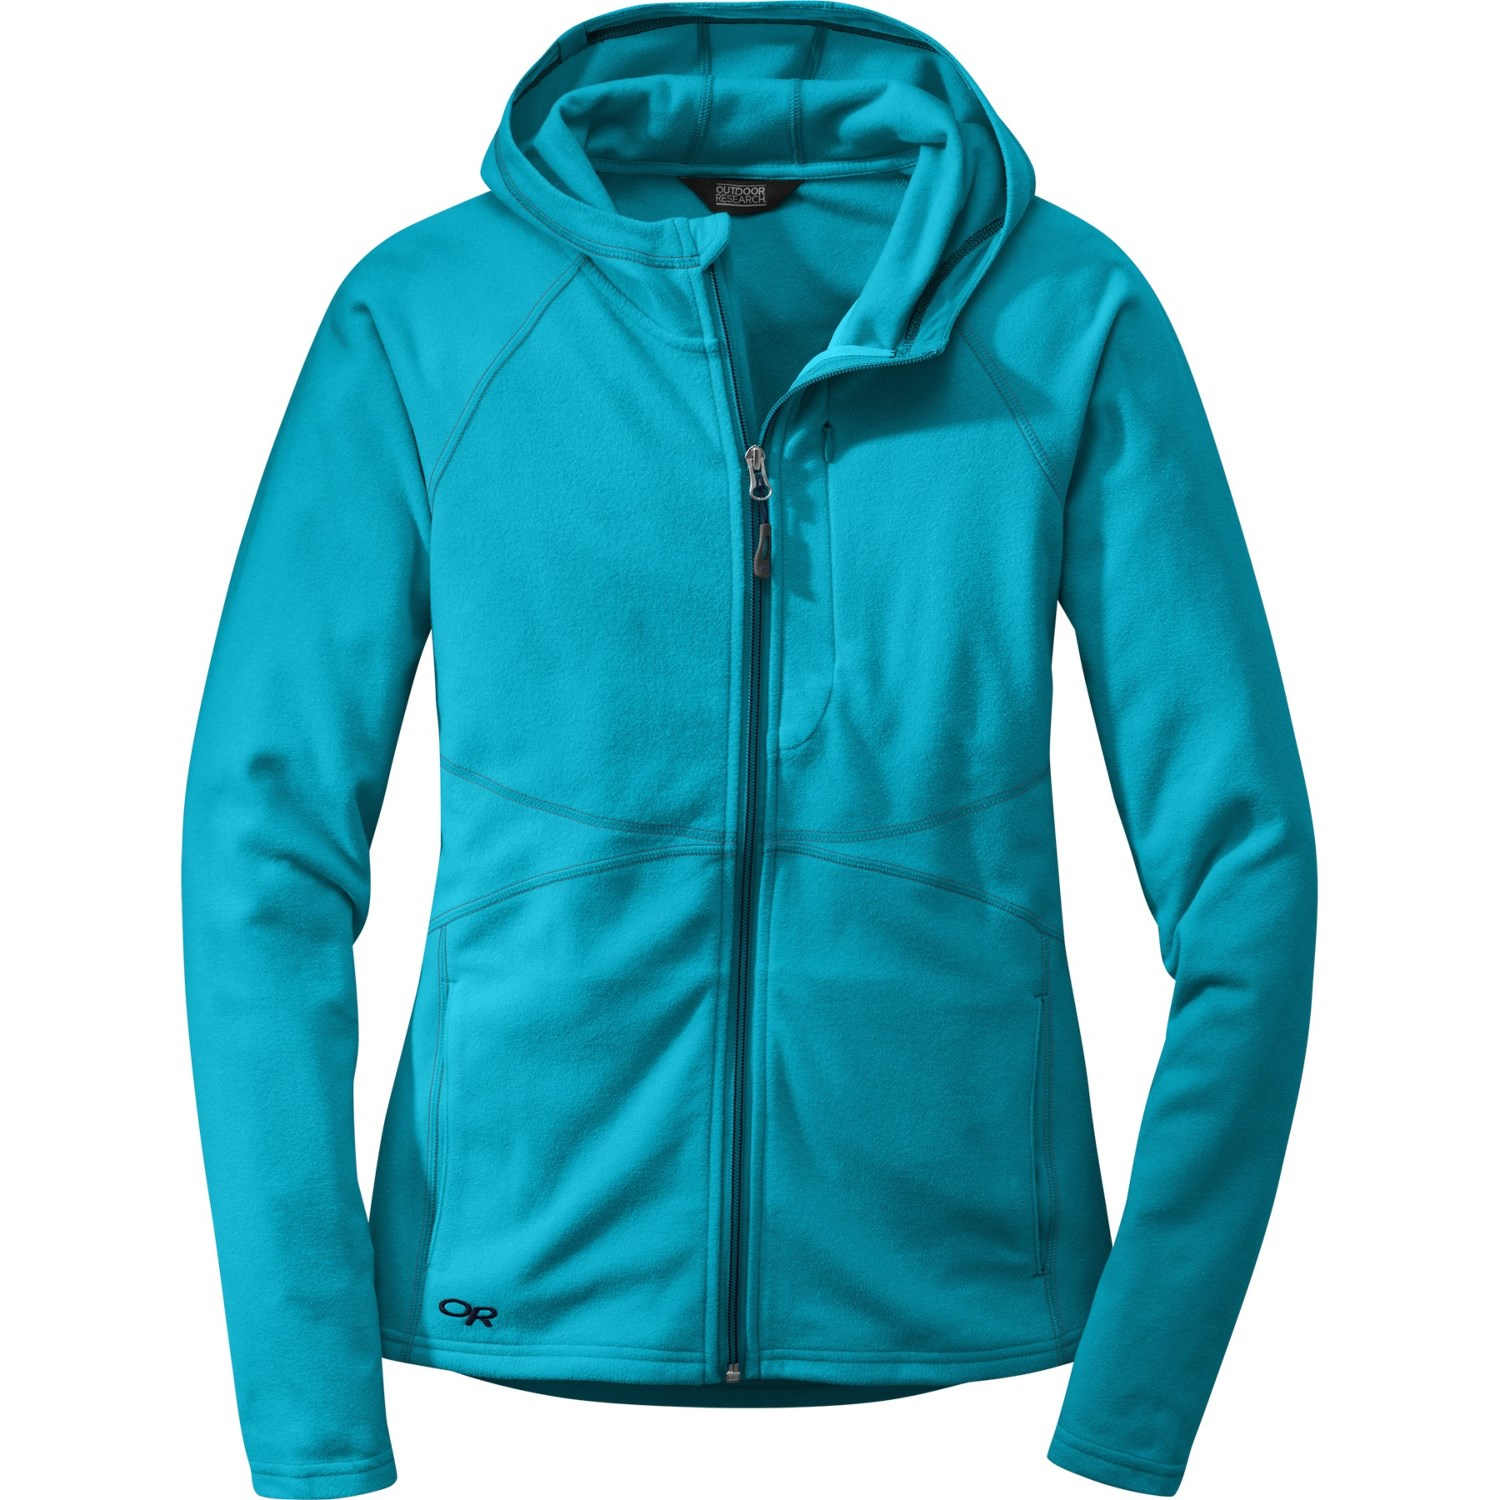 Women's Sweatshirts & Hoodies: Average savings of 53% at Sierra